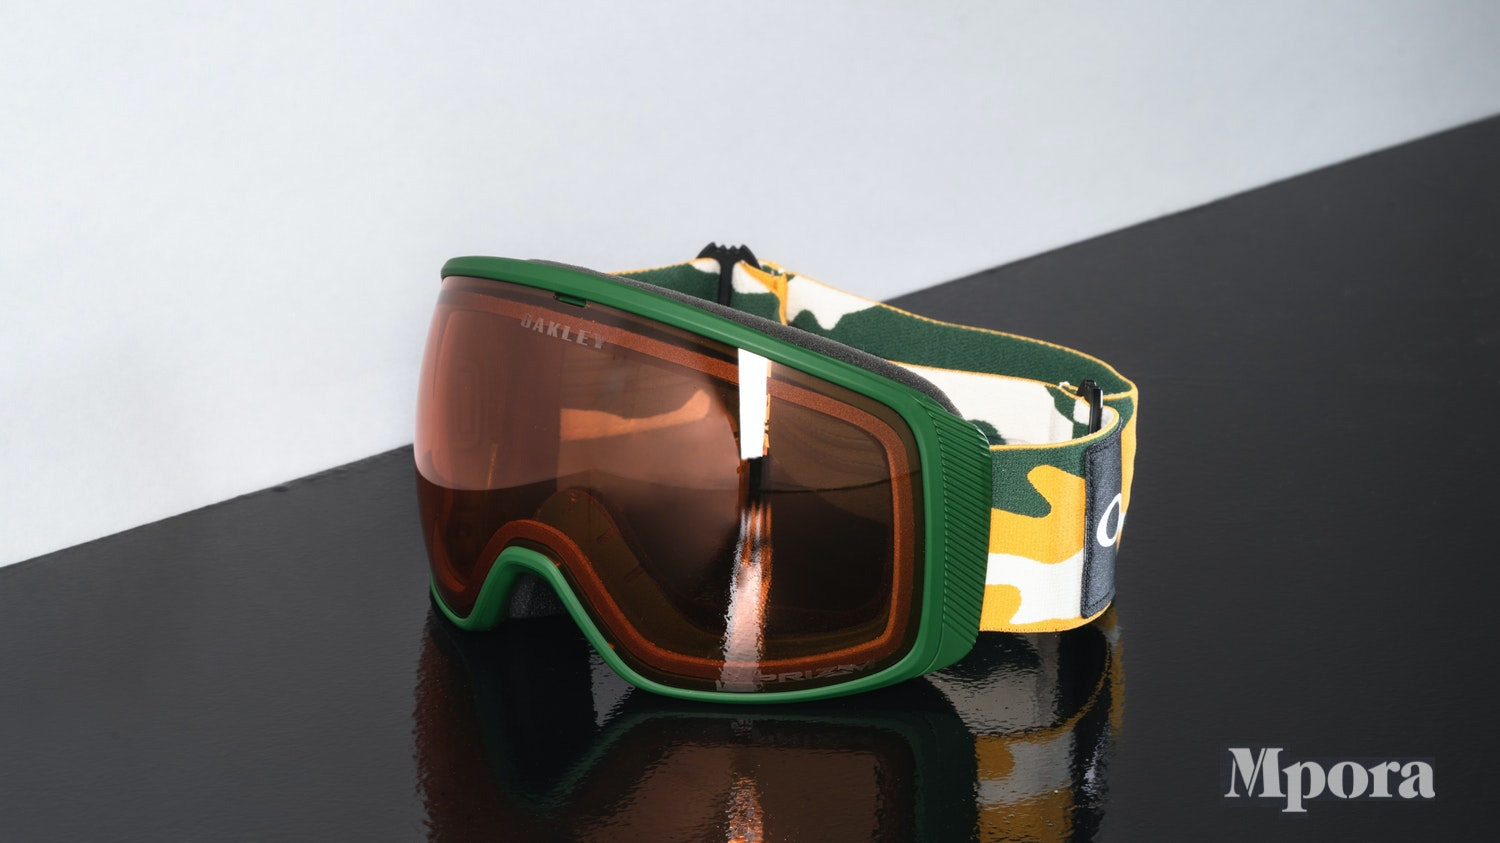 Gifts-For-Skiers-Skiing-Presents